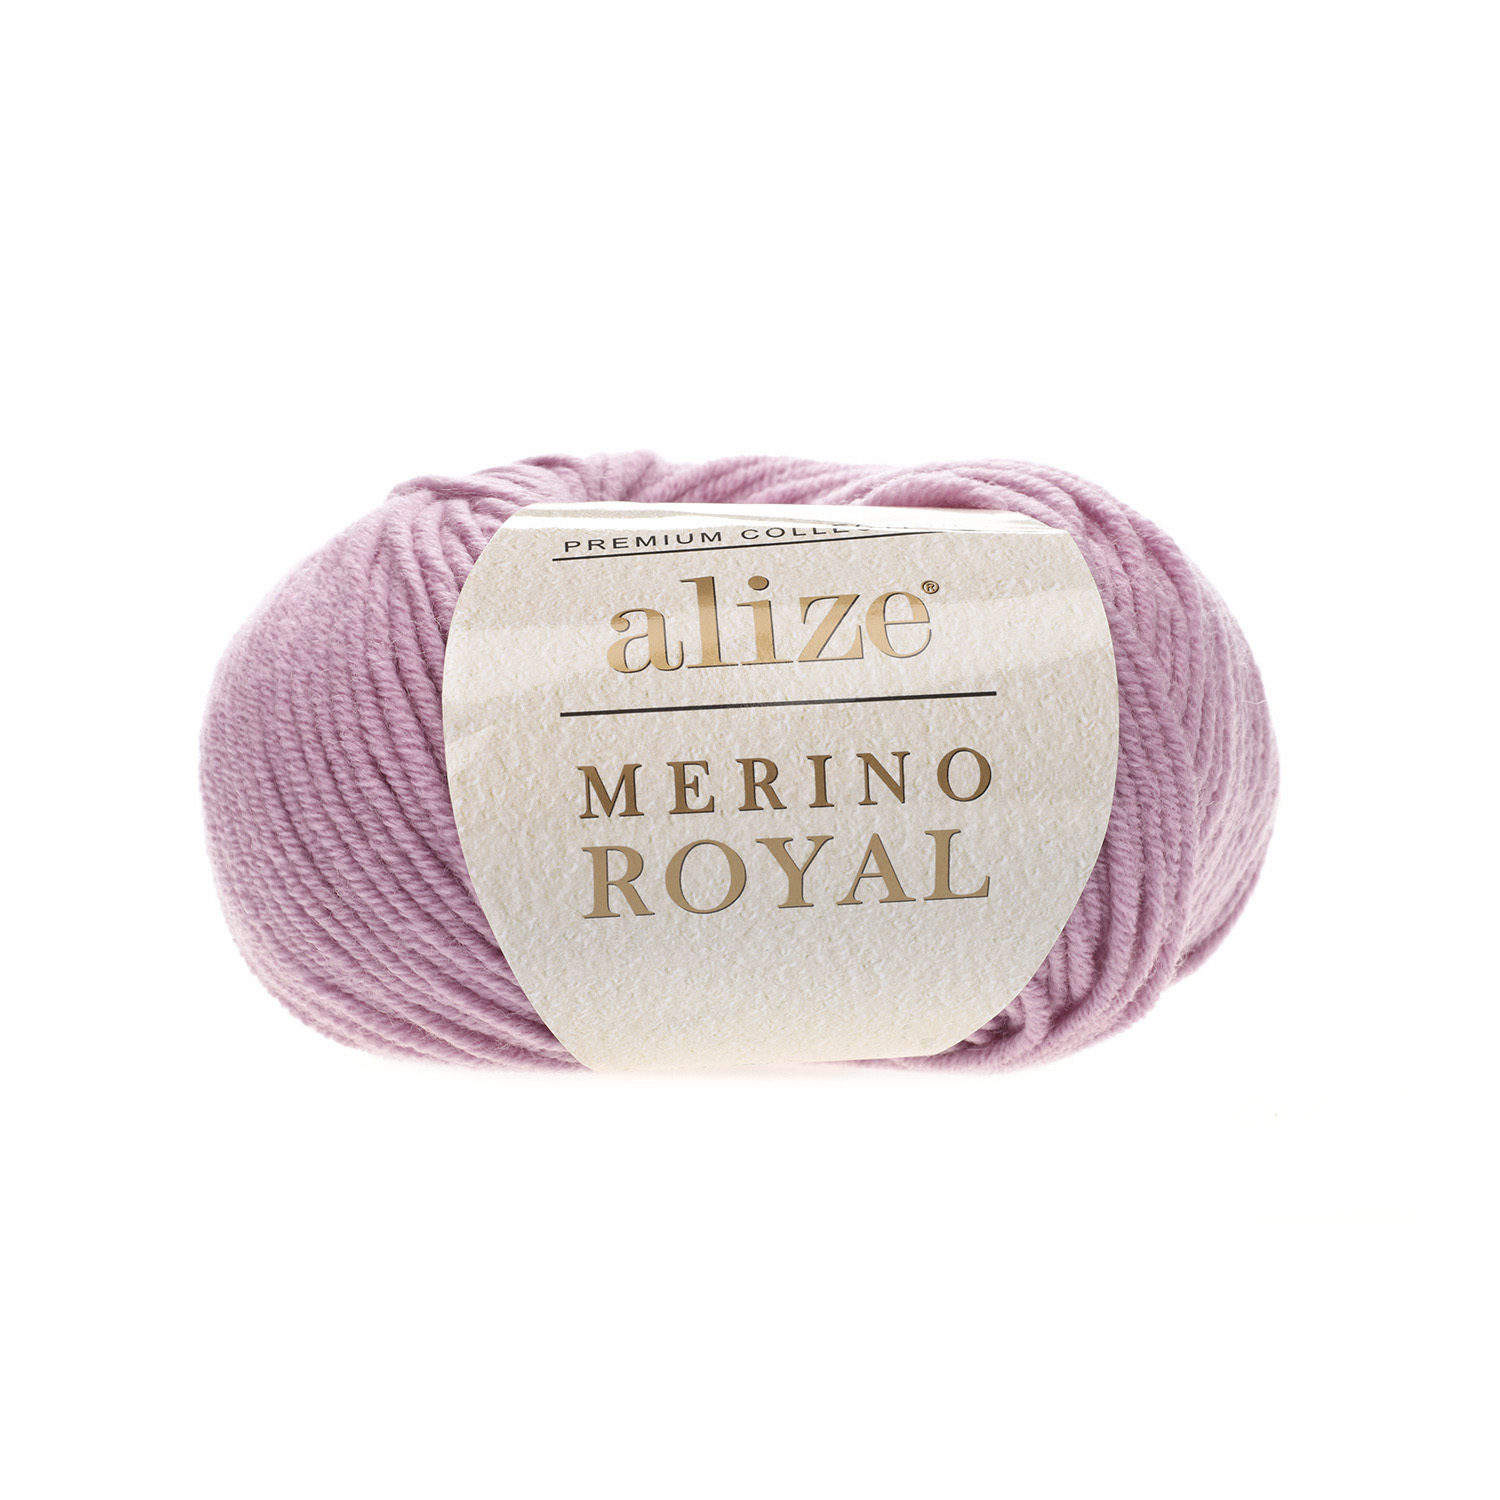 Alize Merino Royal сухая роза 198